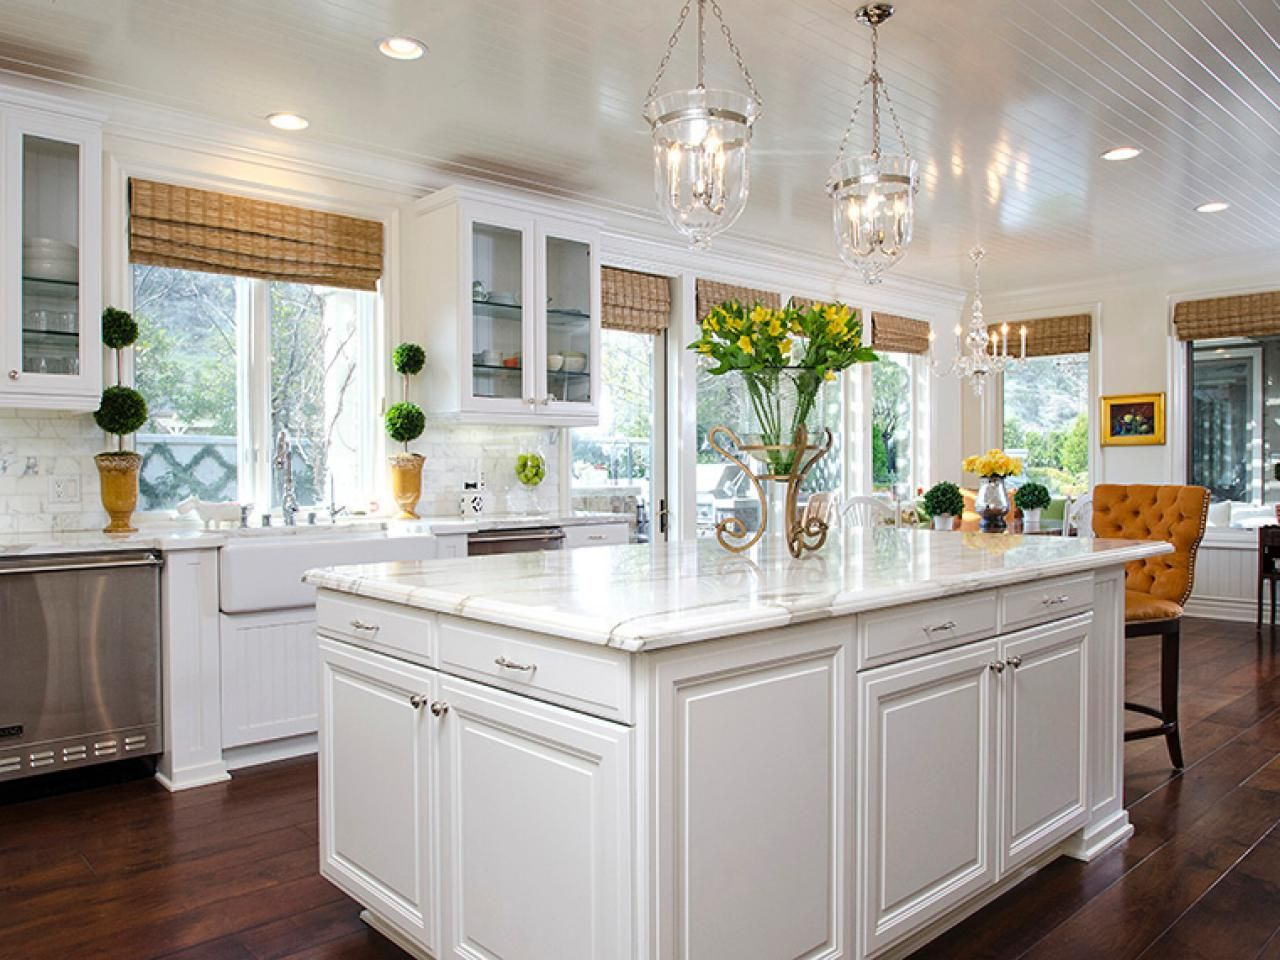 DIY Kitchen Window Treatments Pictures & Ideas From HGTV ...